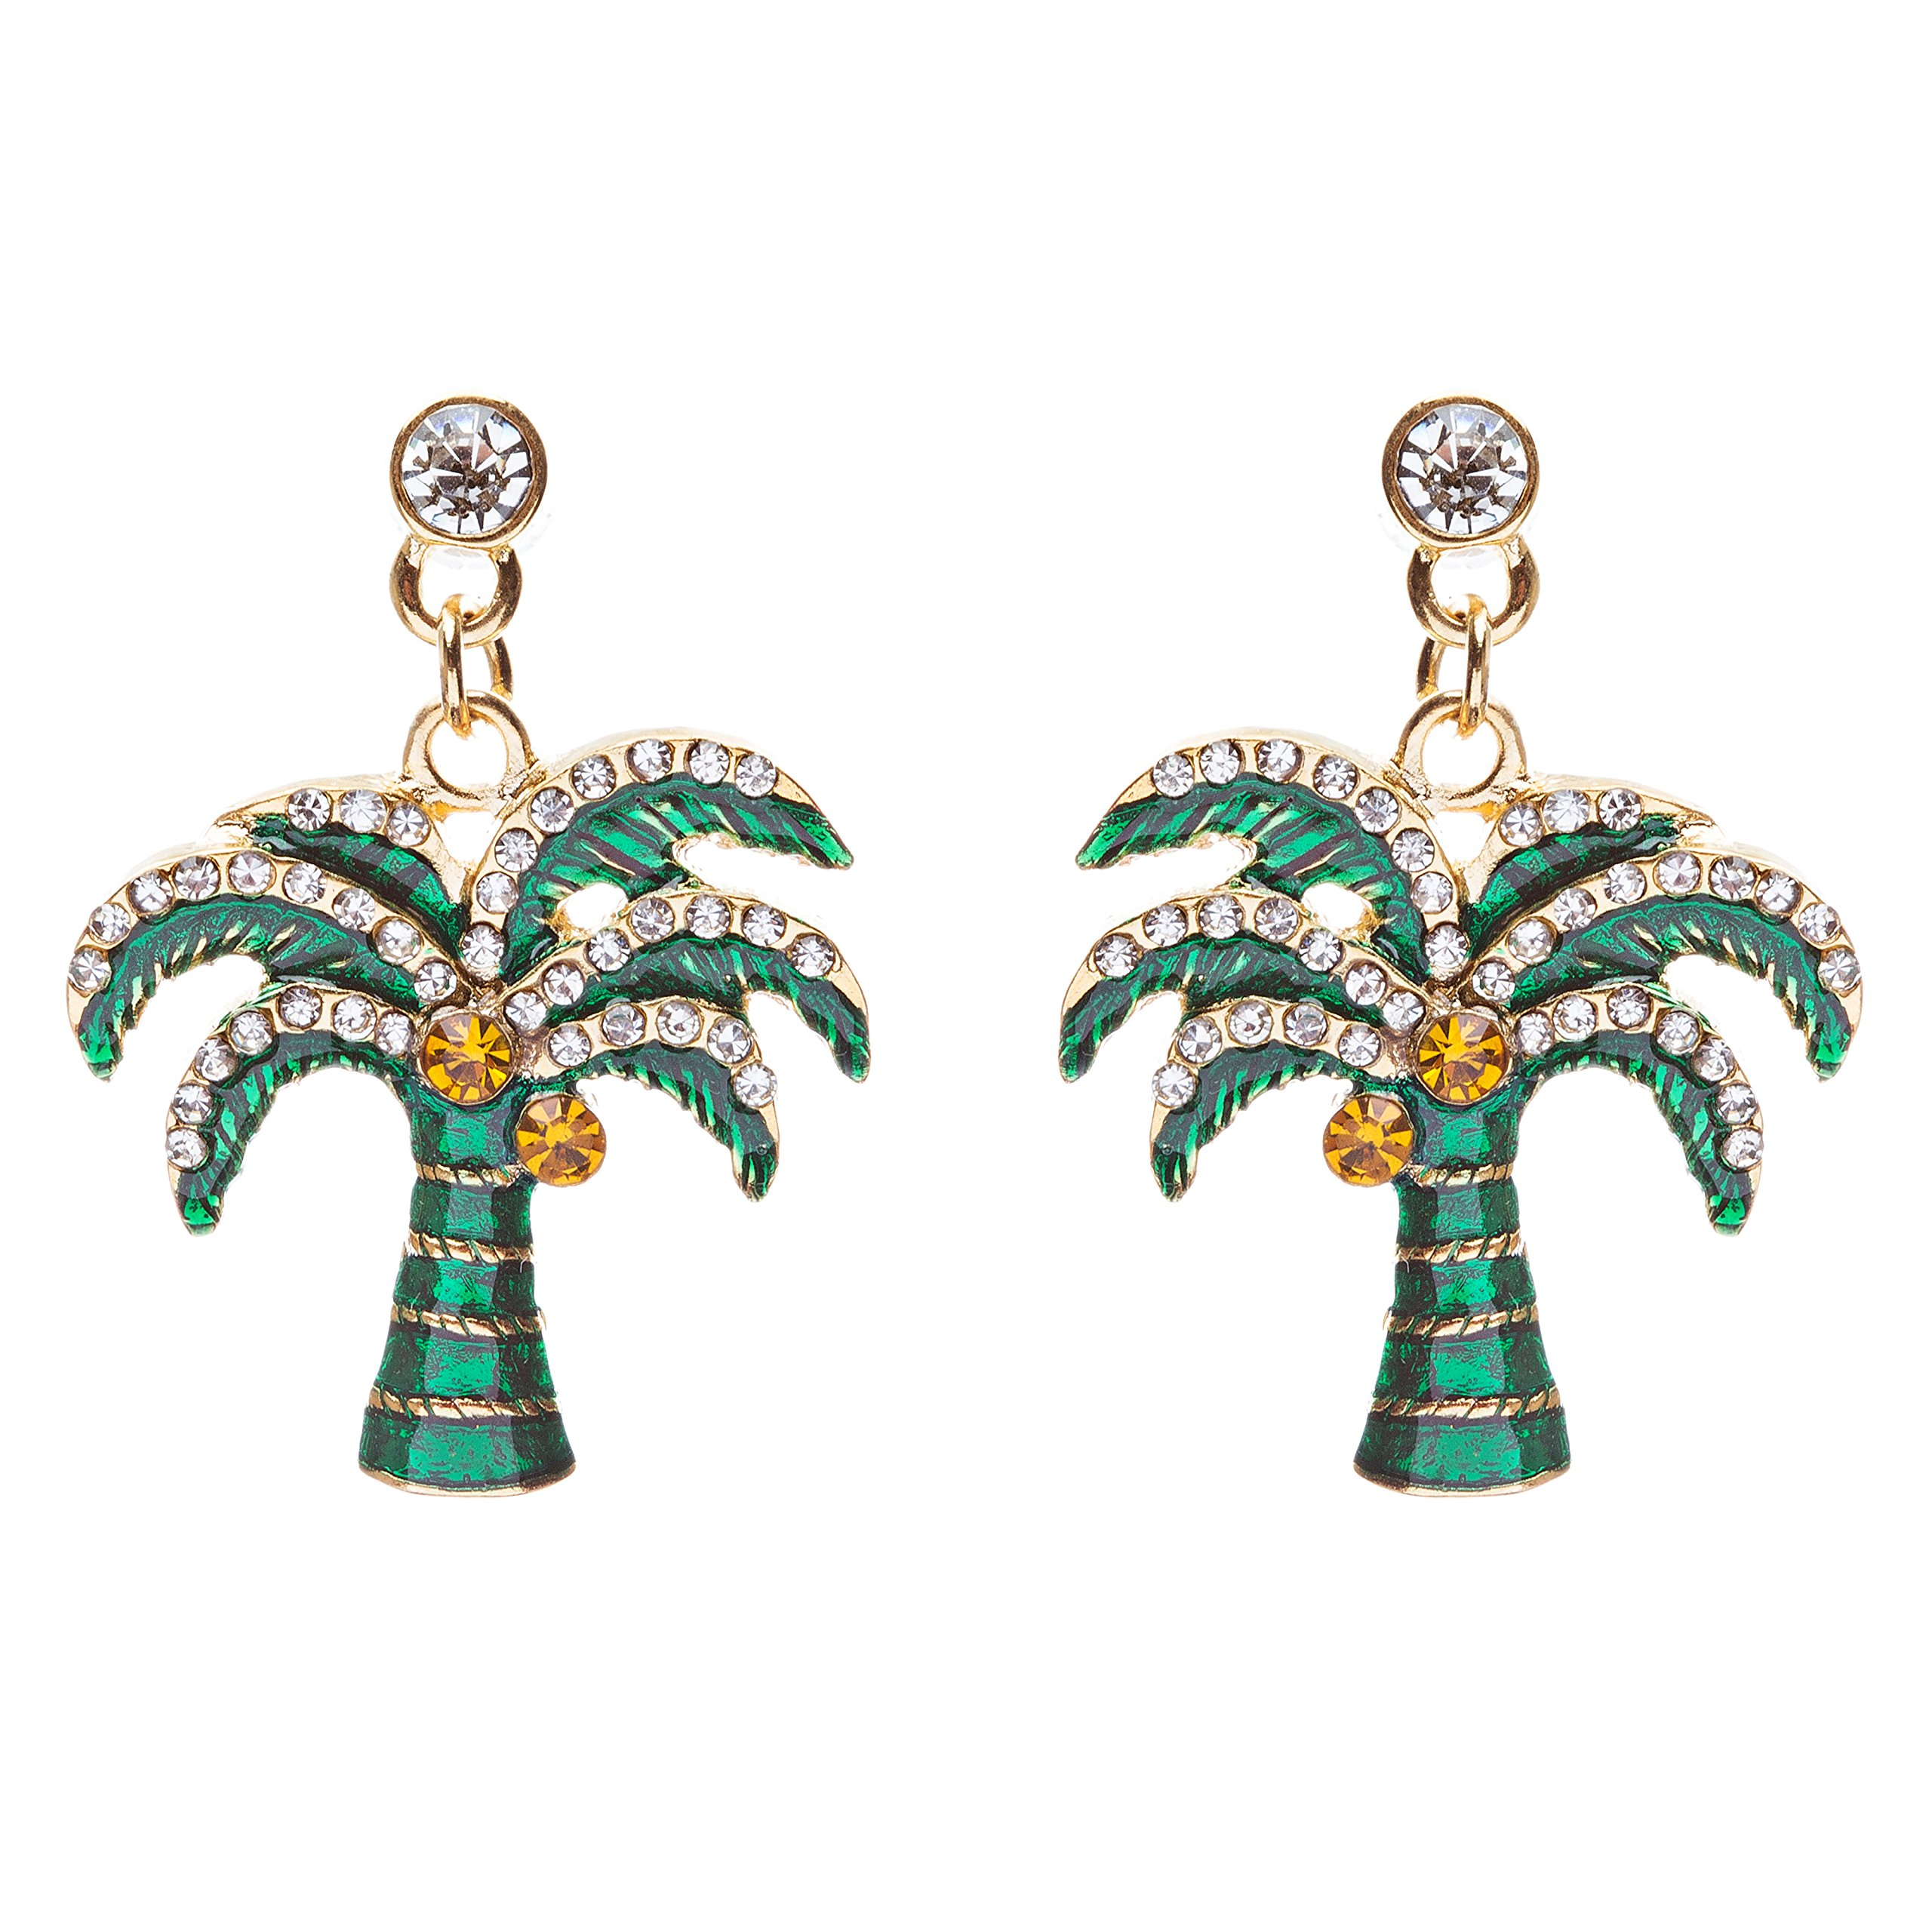 ACCESSORIESFOREVER Women Stylish Crystal Rhinestone Pretty Palm Tree Charm Earrings E861 Green Gold by Accessoriesforever (Image #1)